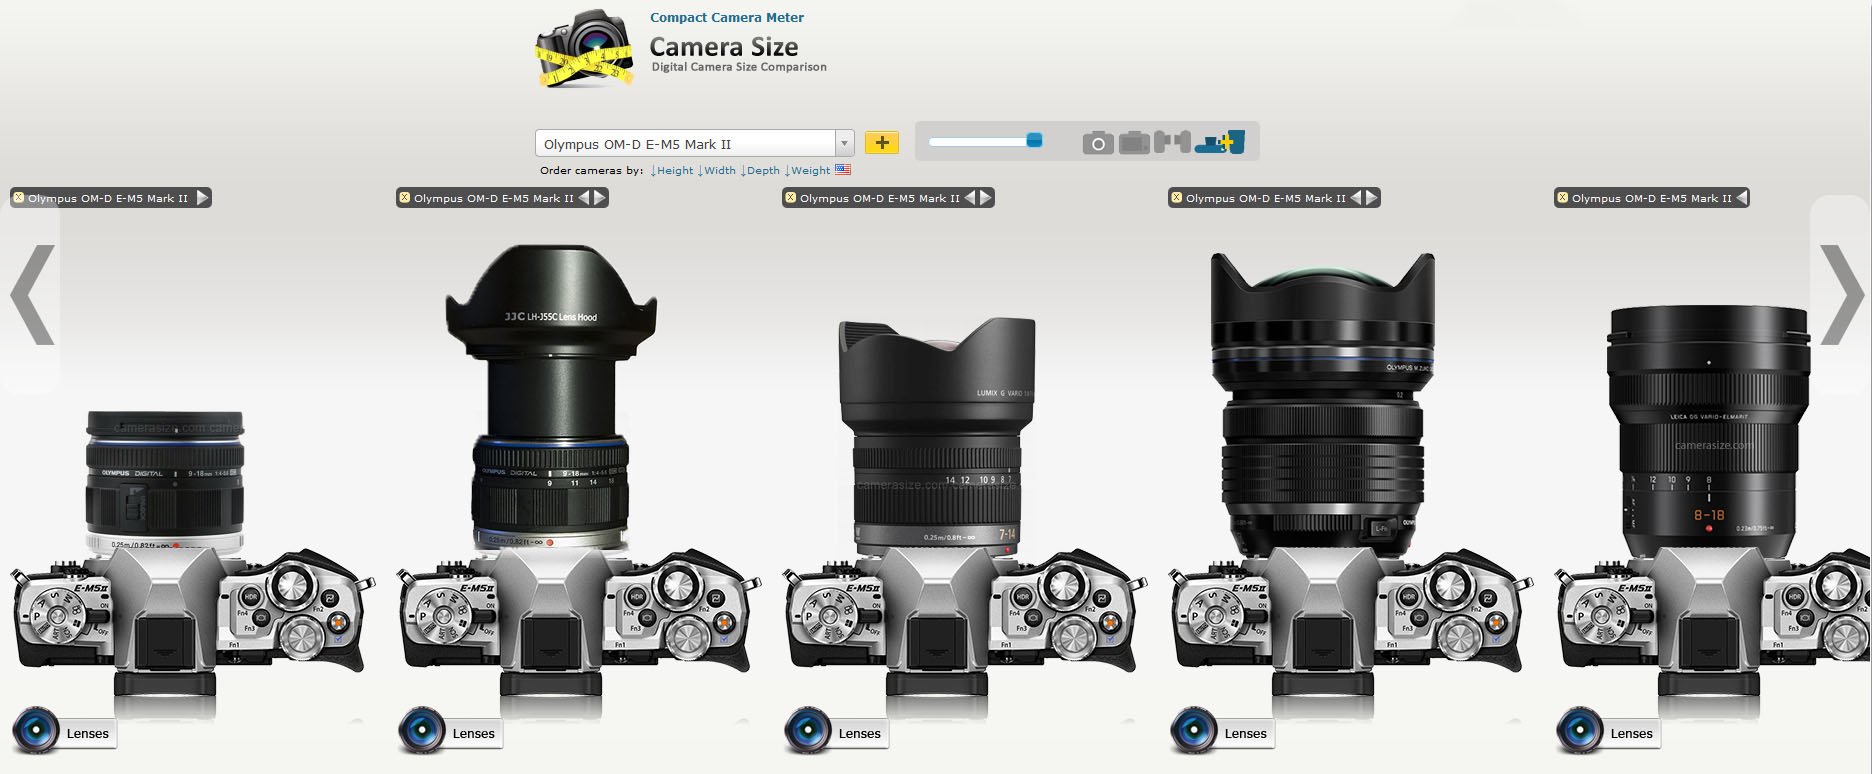 The Online Photographer Lenses Sigma 20mm T15 Ff High Speed Prime For Canon Sony Its Hard To Visualize Sizes From Specs Camerasizecom Rescue Sorta They Only Show Collapsible Collapsedand Thats One Of My Points